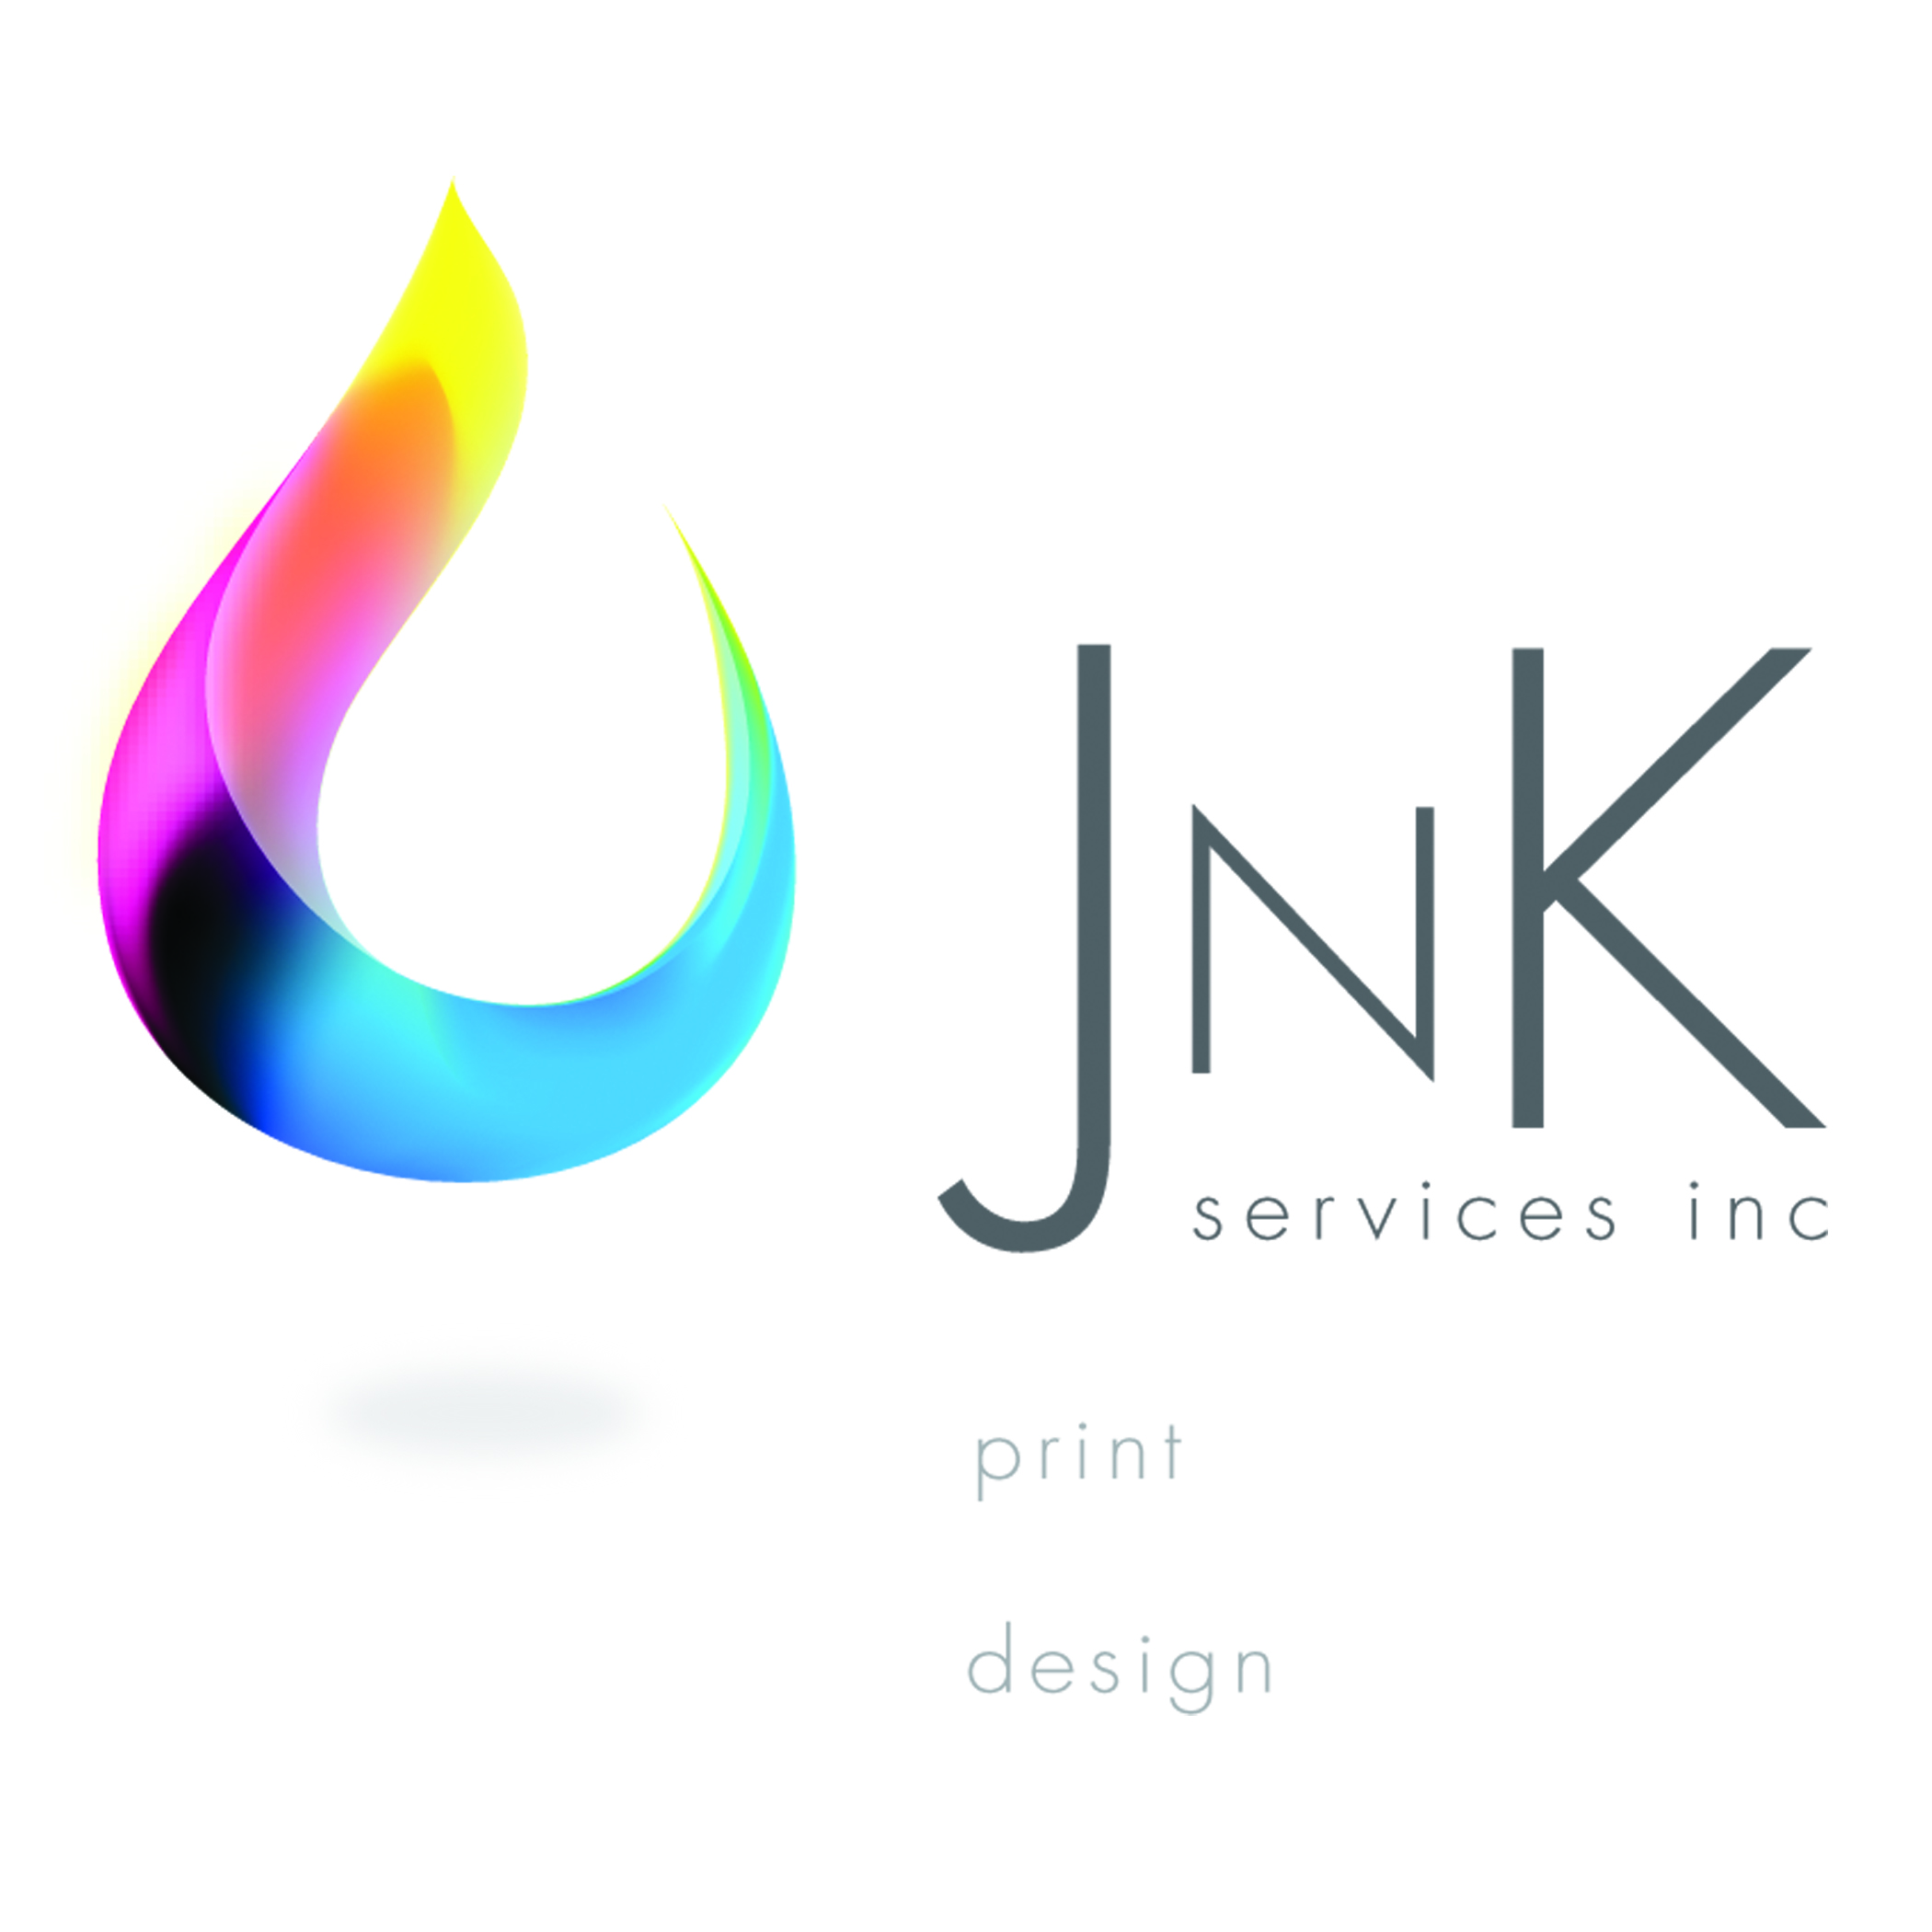 Branding And Rebranding Jnk Services